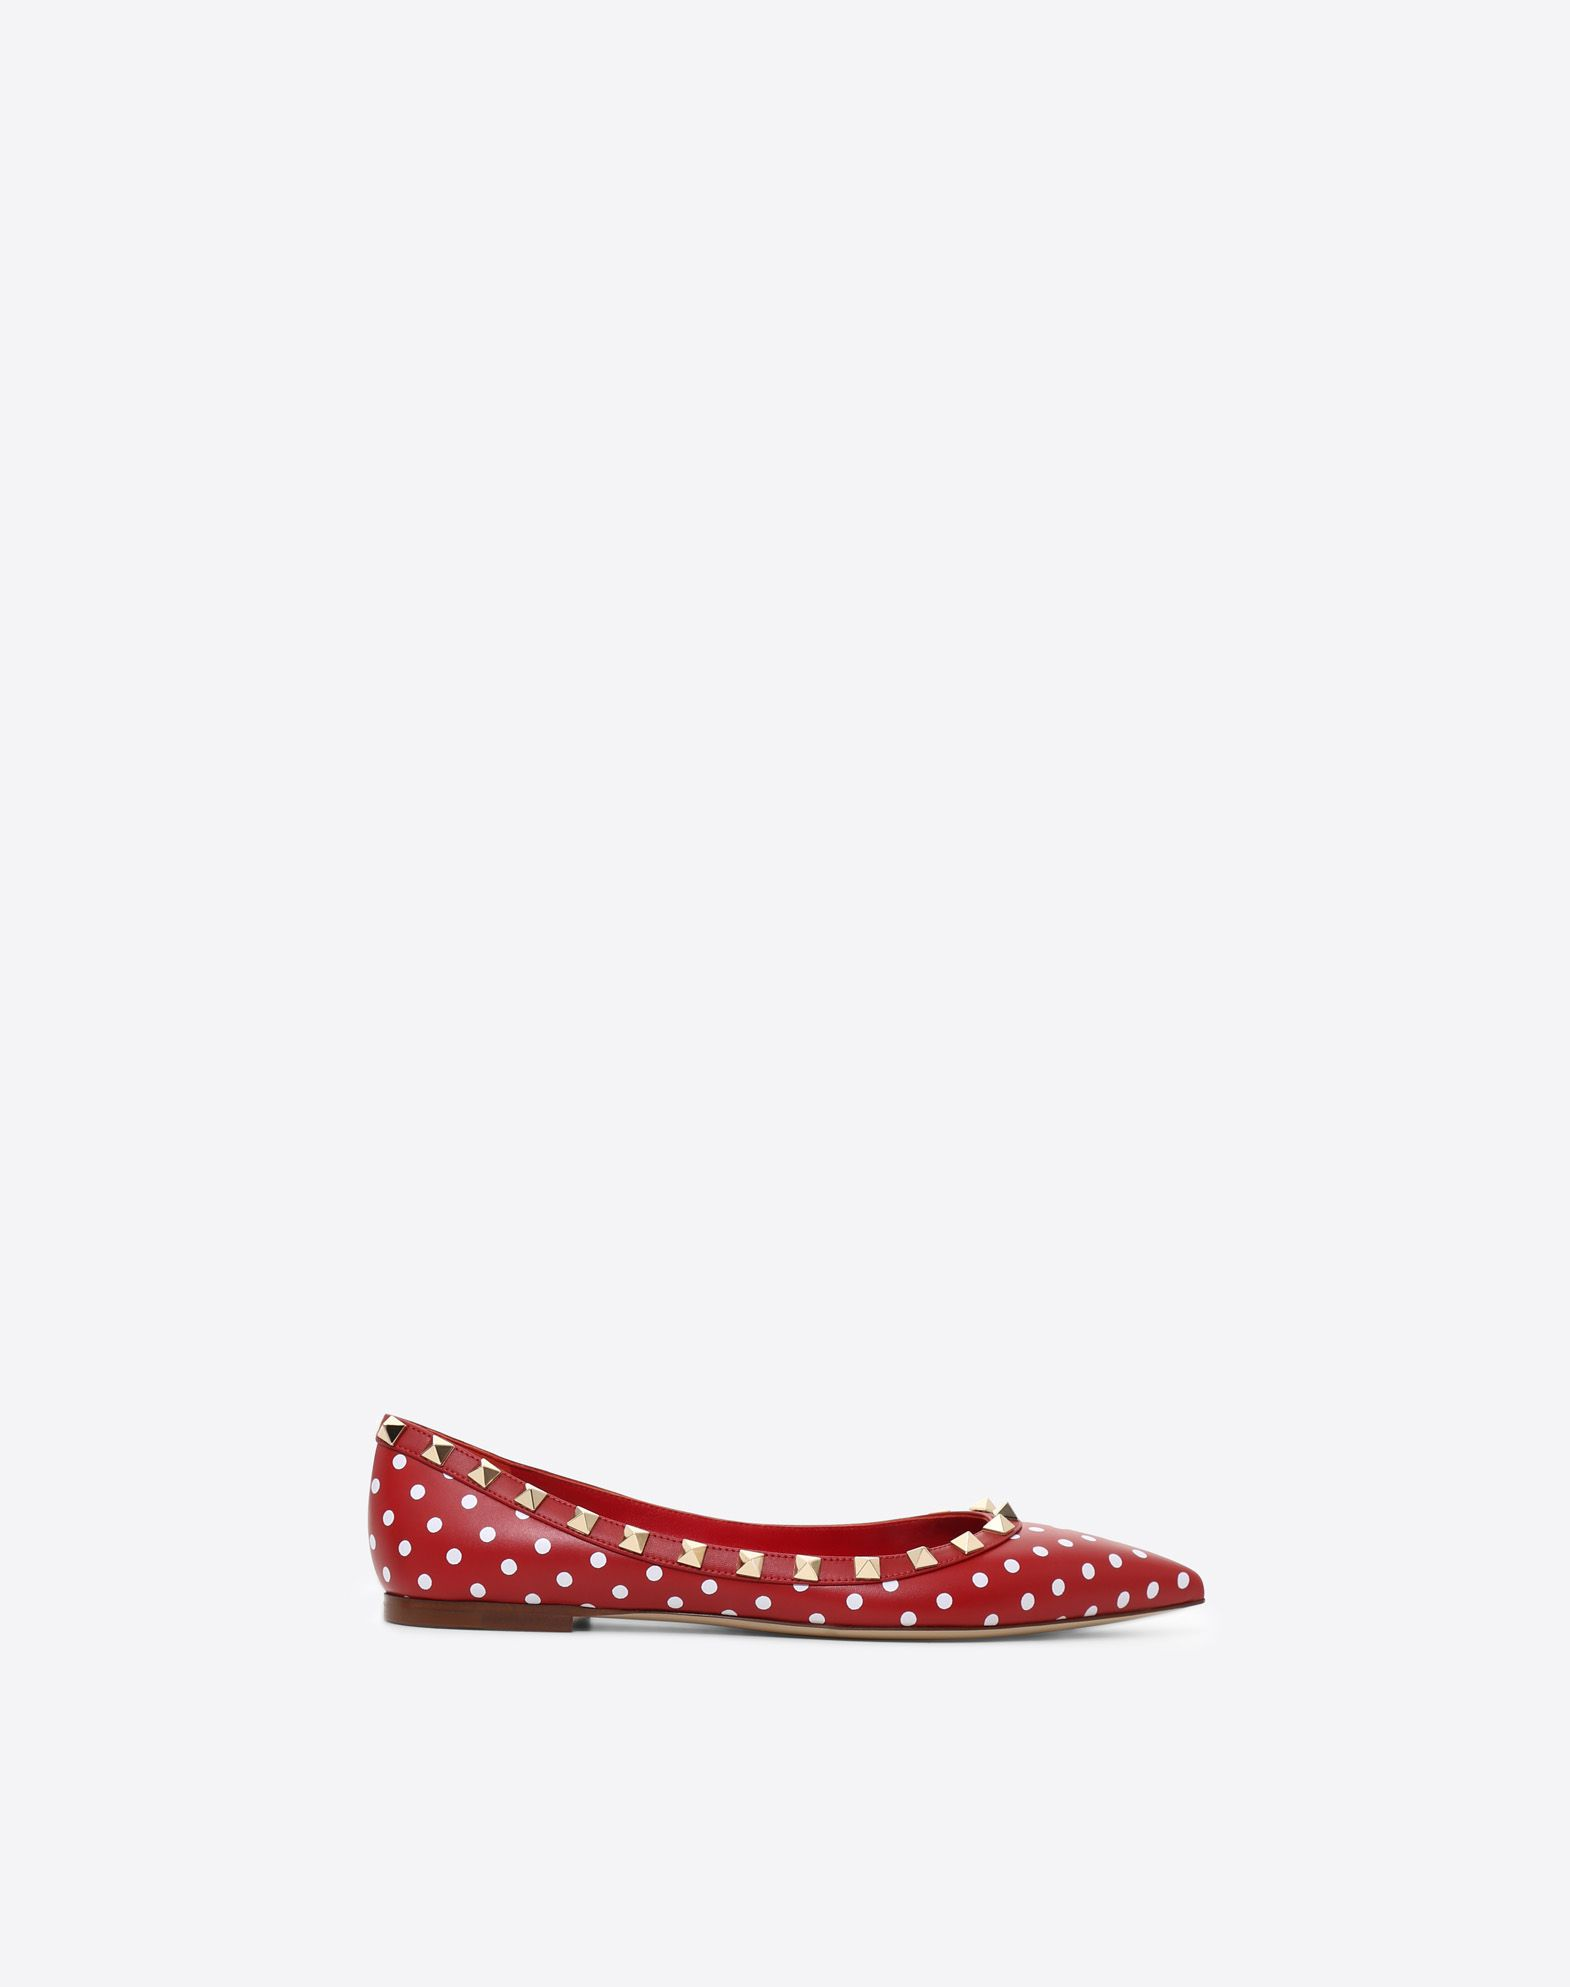 VALENTINO Studs Narrow toeline Leather sole Polka dots  11470391hm